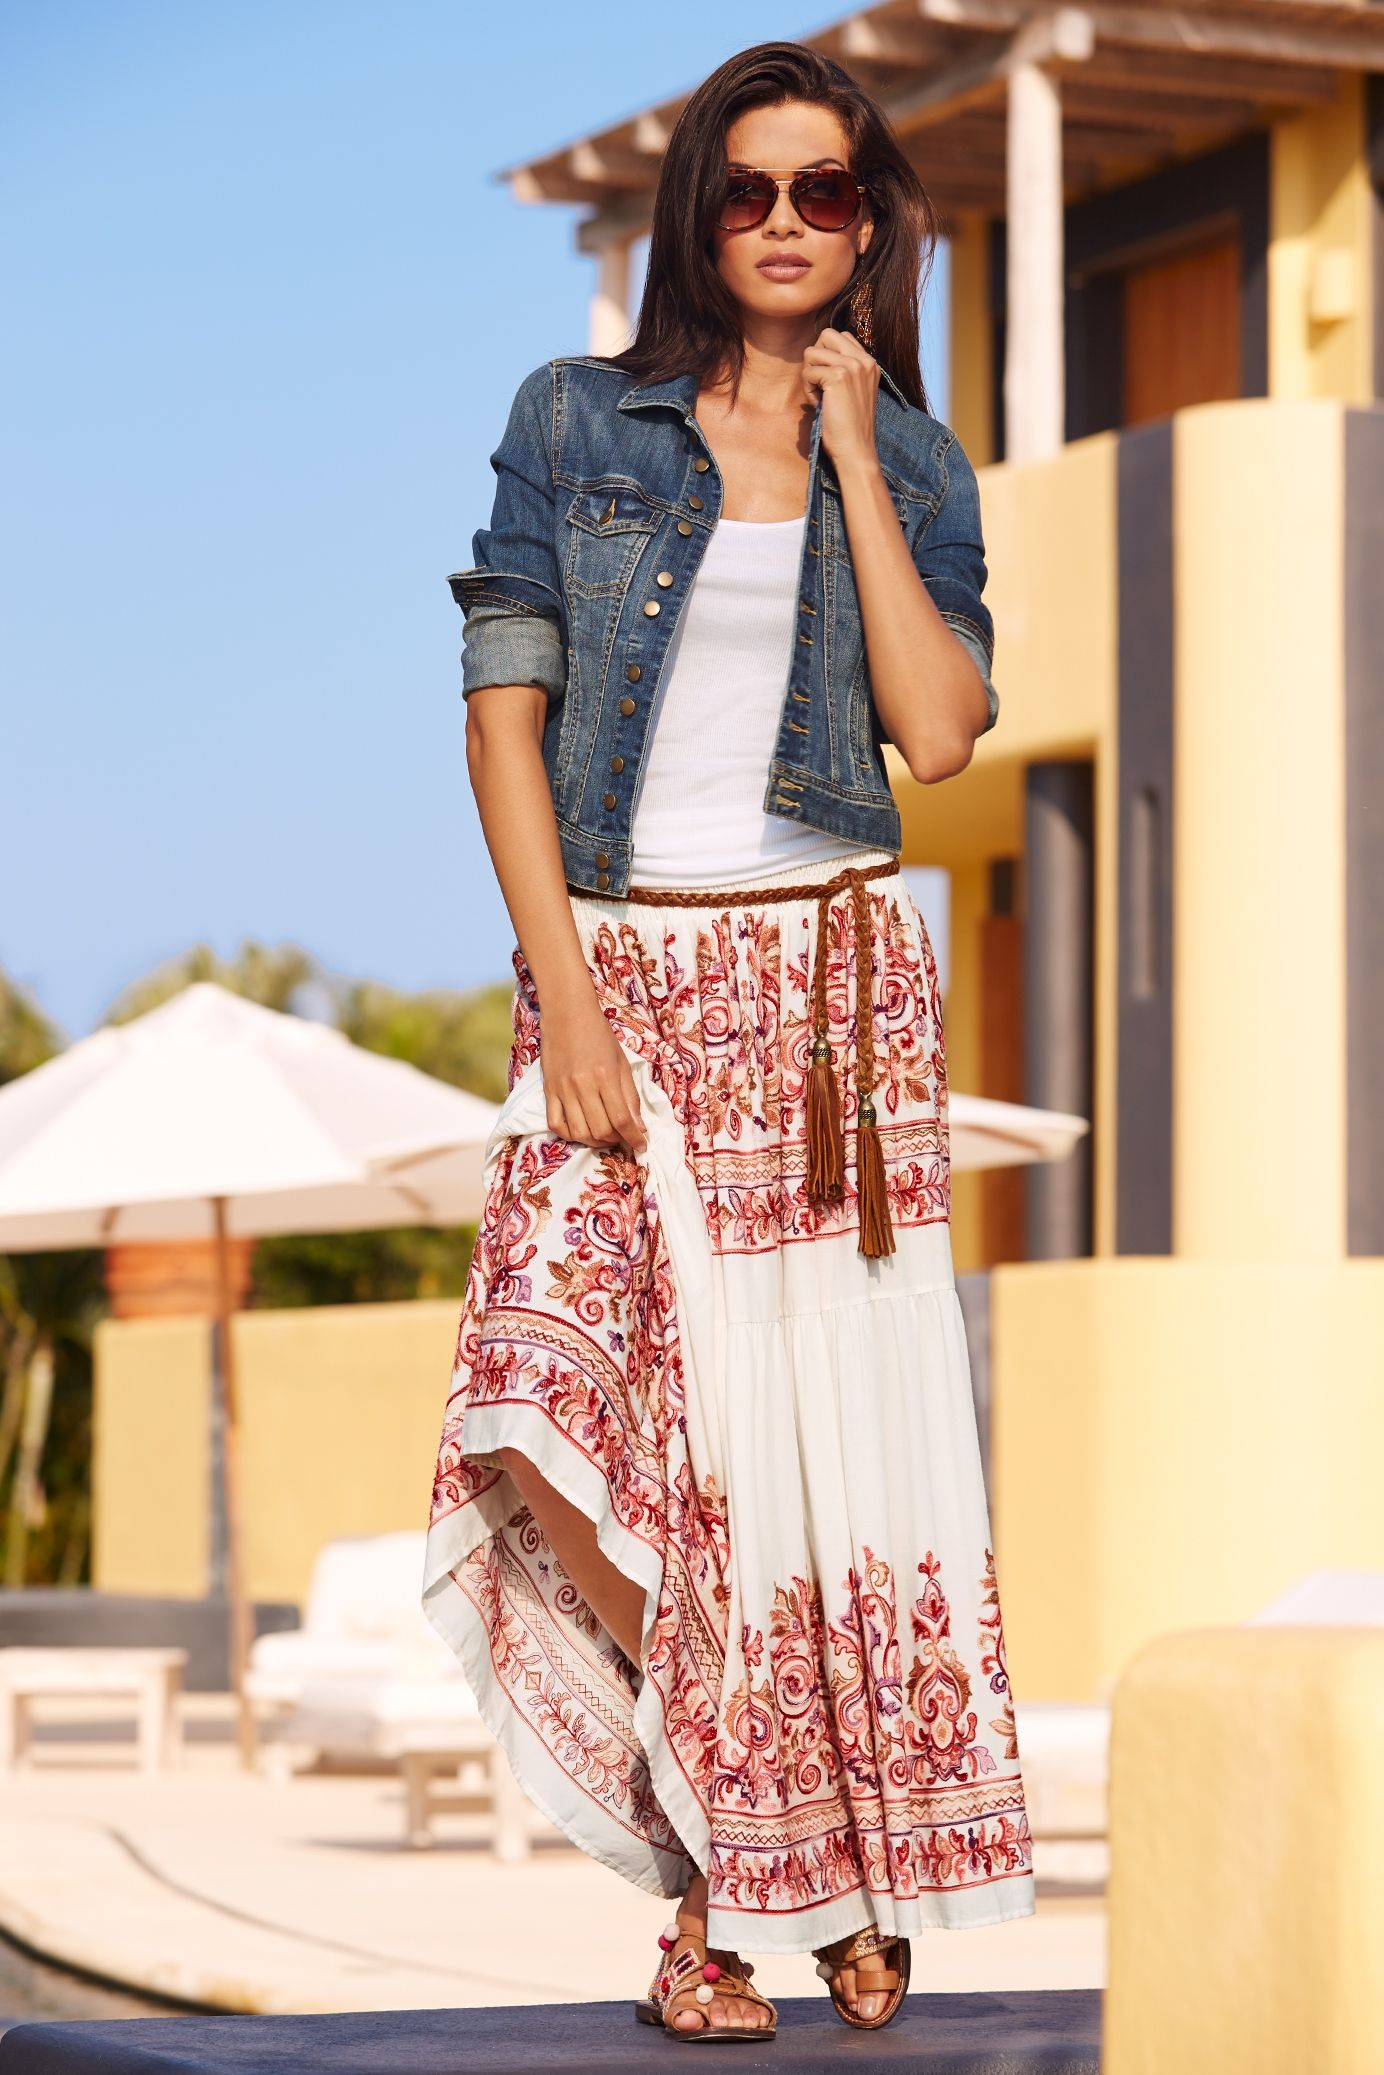 Image result for Bohemian Style in a Peasant Skirt